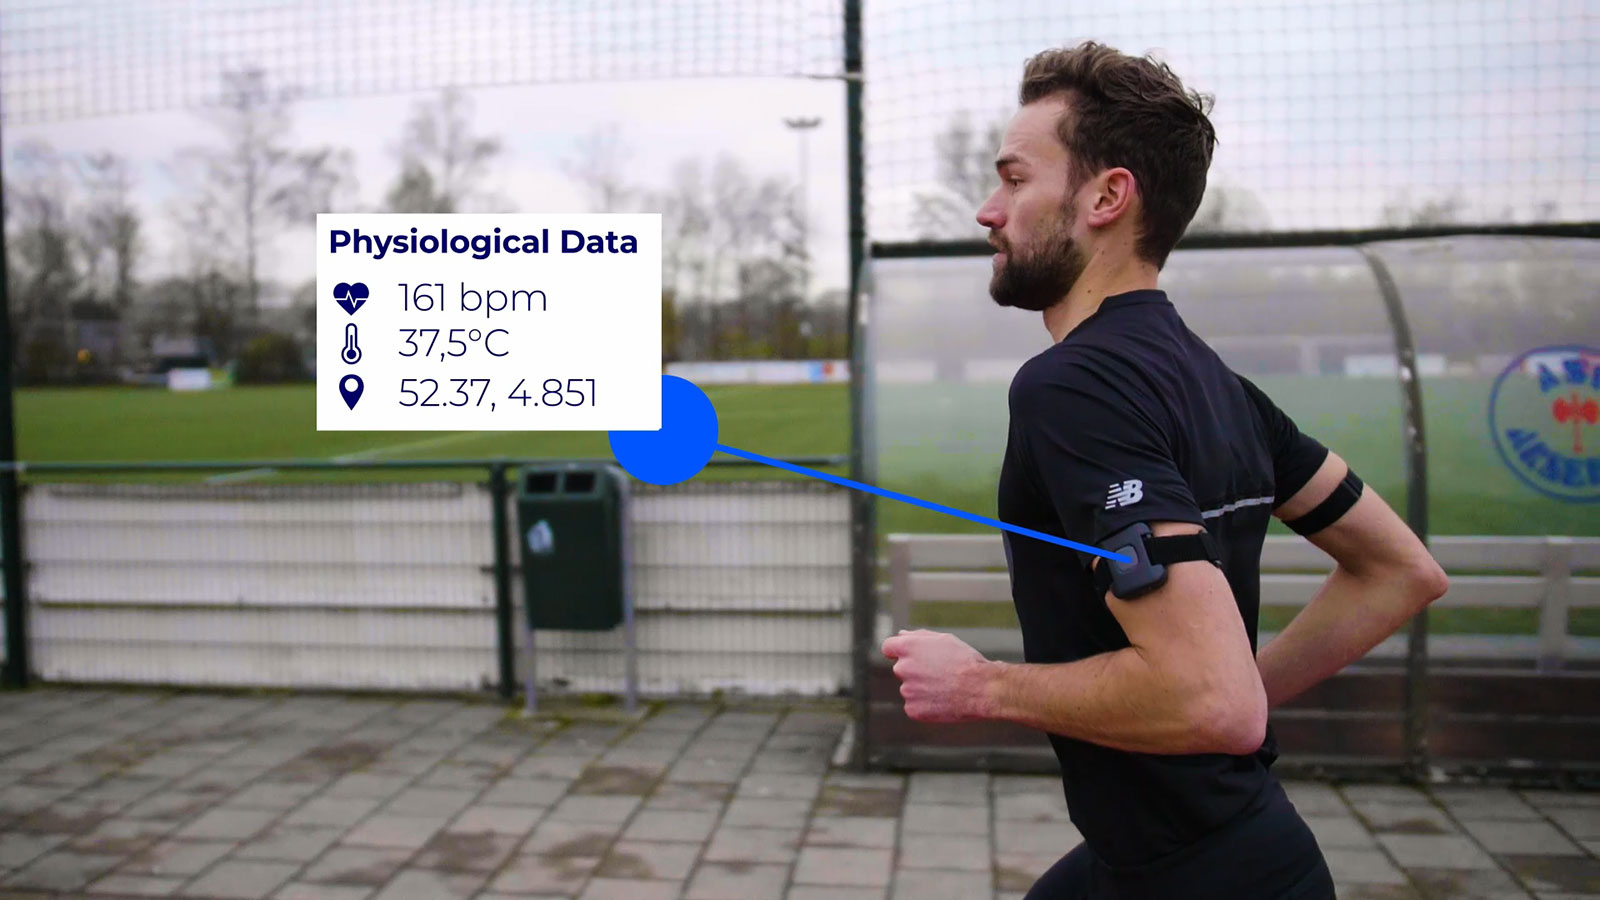 Using-wearables-to-improve-athletic-performance